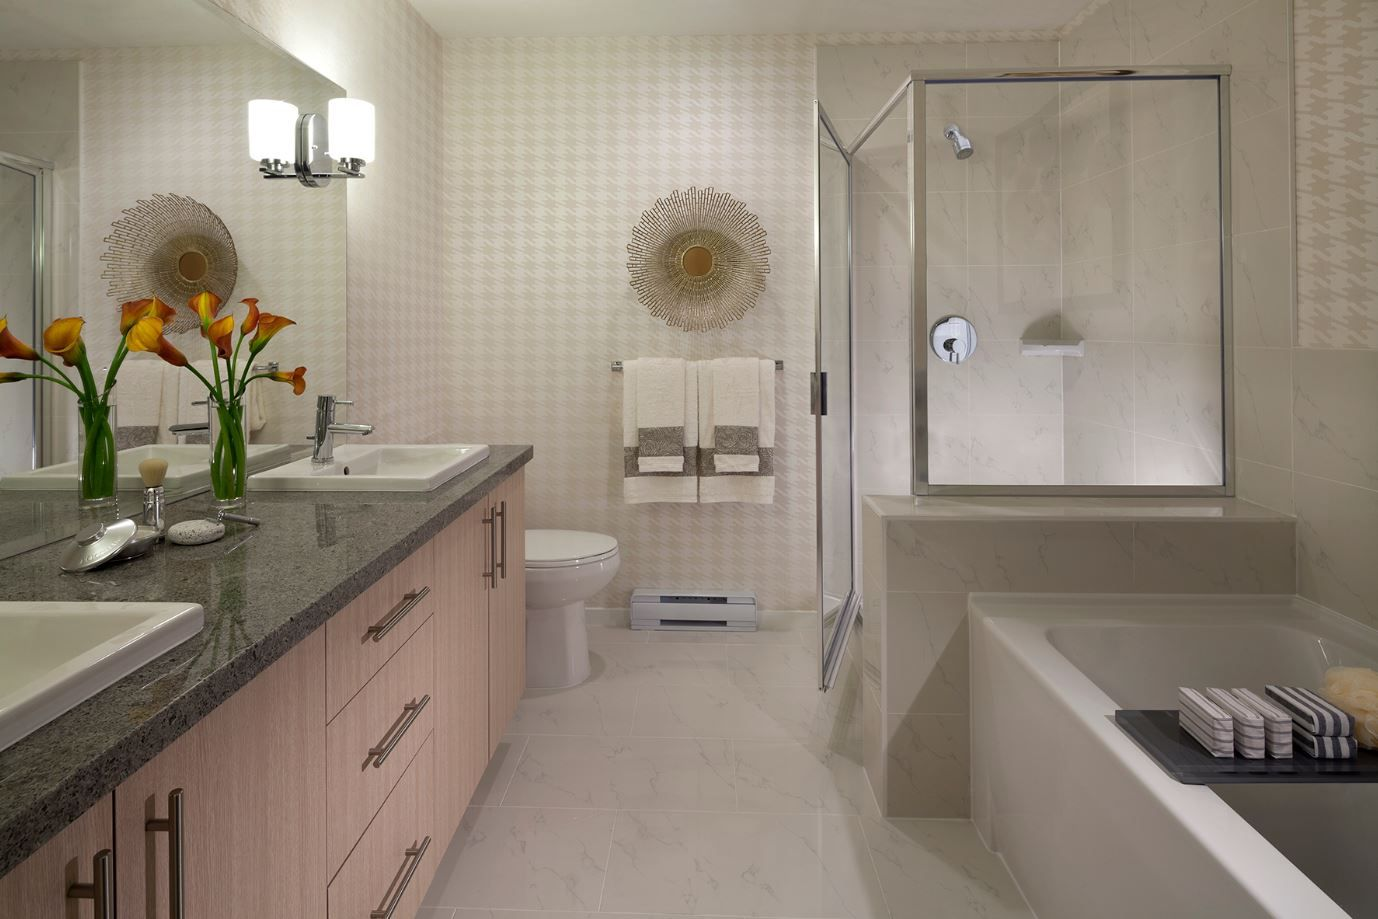 Ensuite bathroom  This 5 piece ensuite is breathtaking and fully indulgent   The bathroom includes. Ensuite bathroom  This 5 piece ensuite is breathtaking and fully